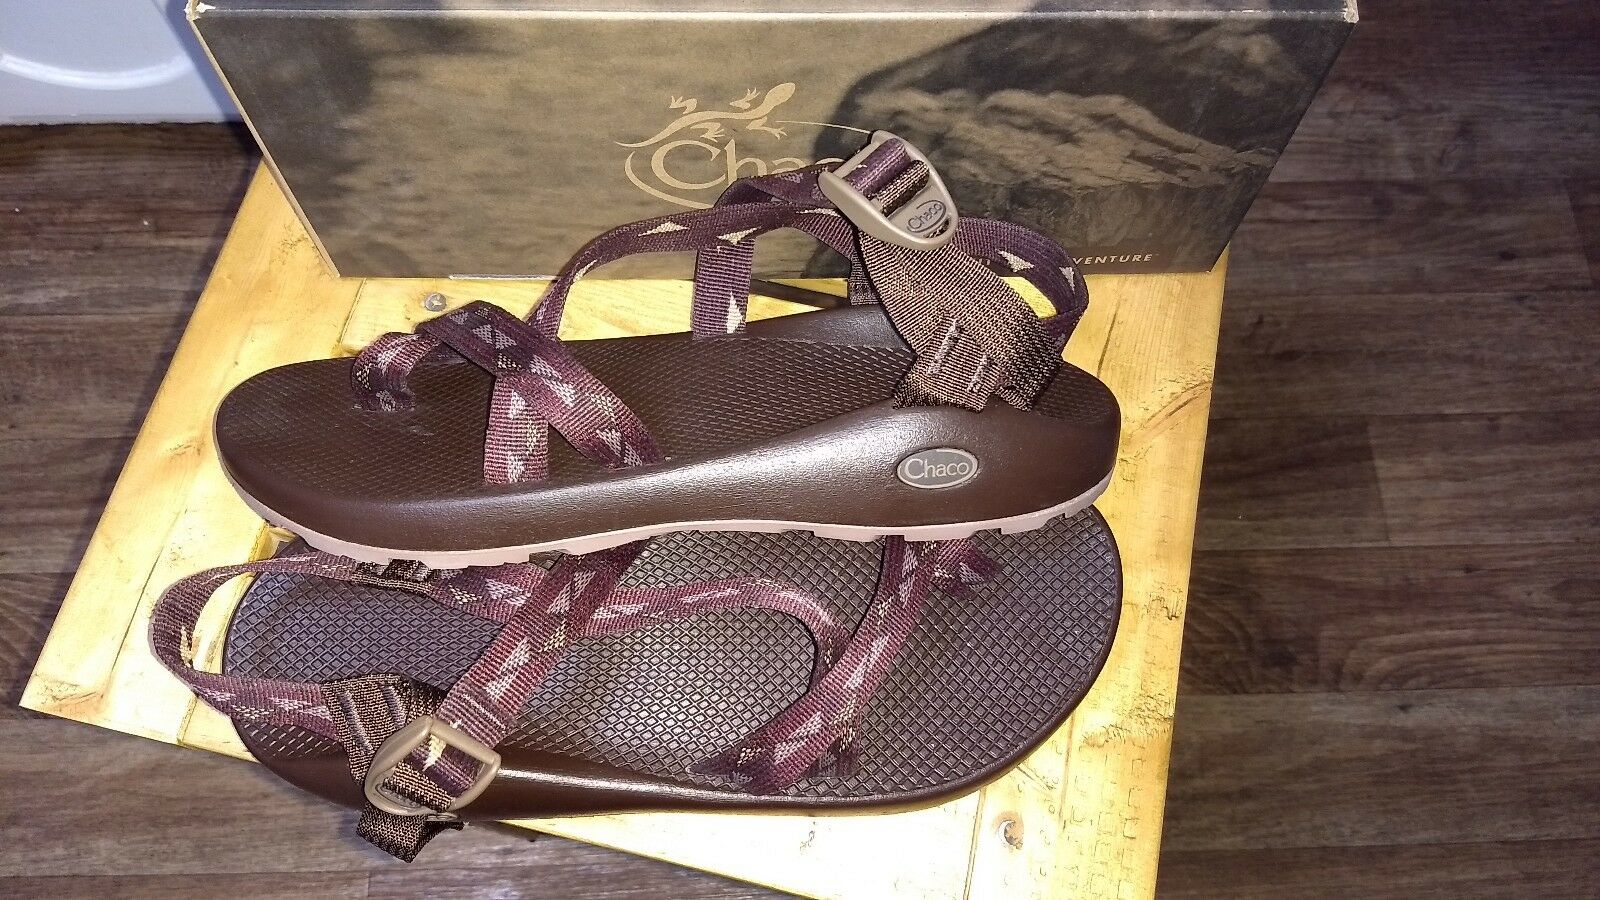 2180d43b12f Chaco Z2 Classic Summit Brown Sandal Men s Size 13 for sale online ...